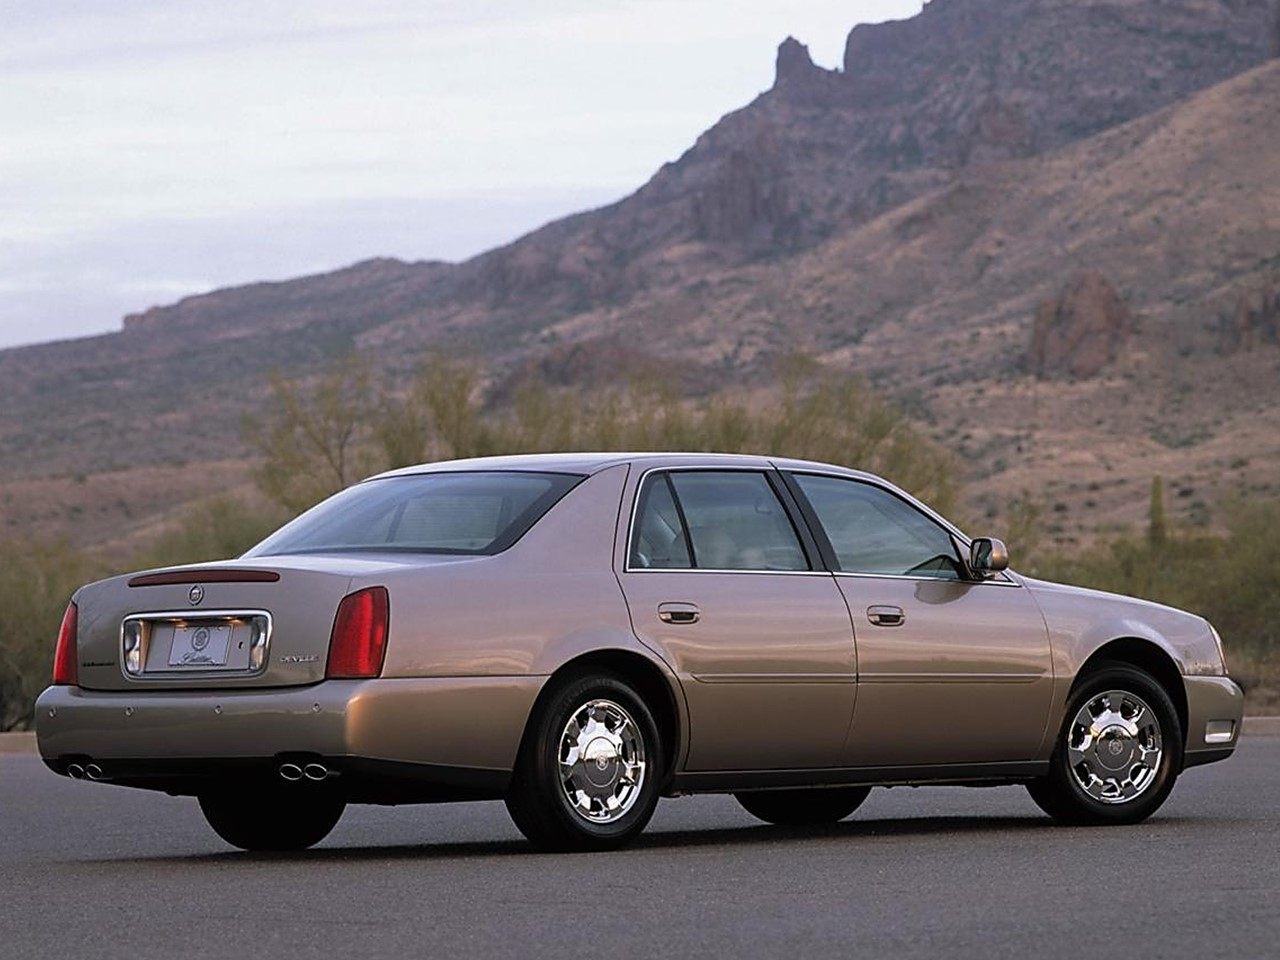 2002 cadillac deville the last of the big guns notoriousluxury 2002 cadillac deville the last of the